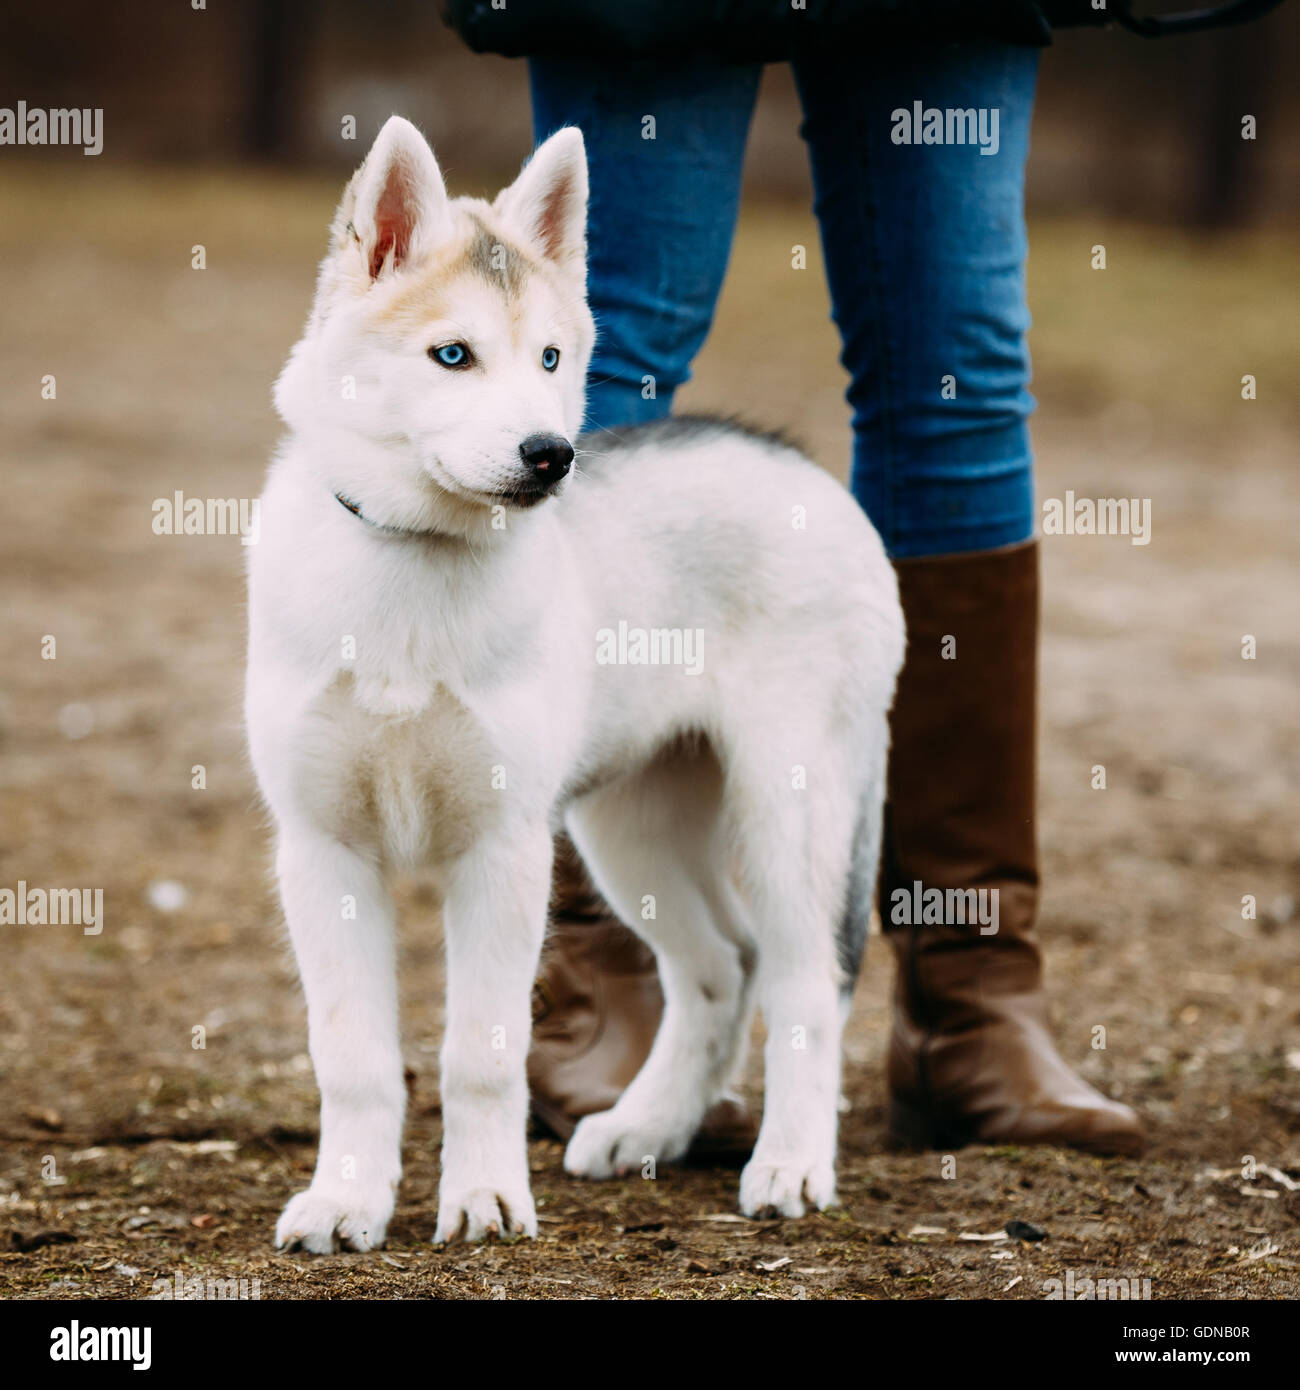 Young Funny White Husky Puppy Dog With Blue Eyes Play